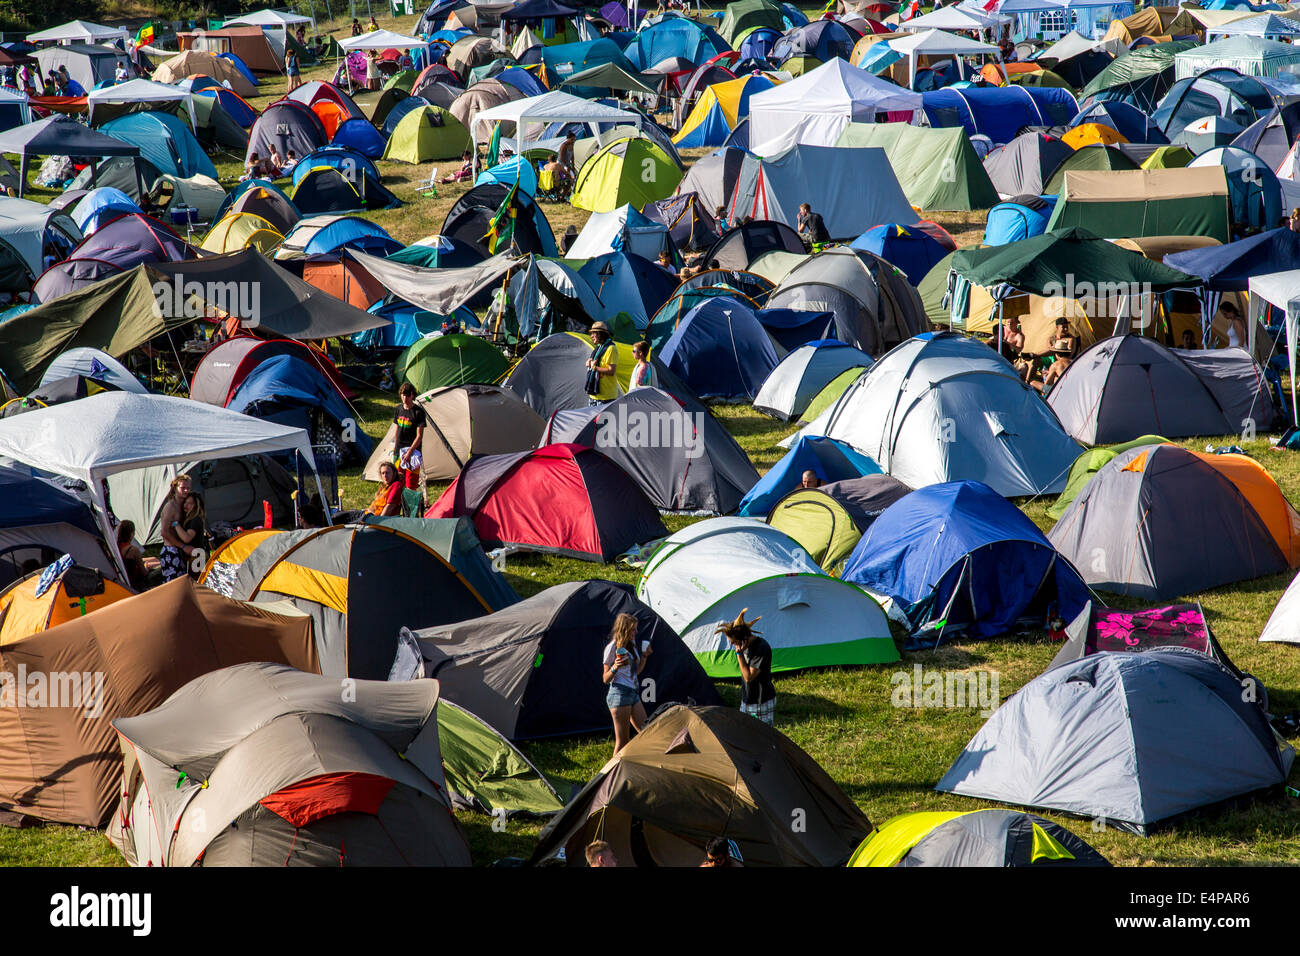 Many tents on a lawn at an open air festival c&ing & Many tents on a lawn at an open air festival camping Stock Photo ...